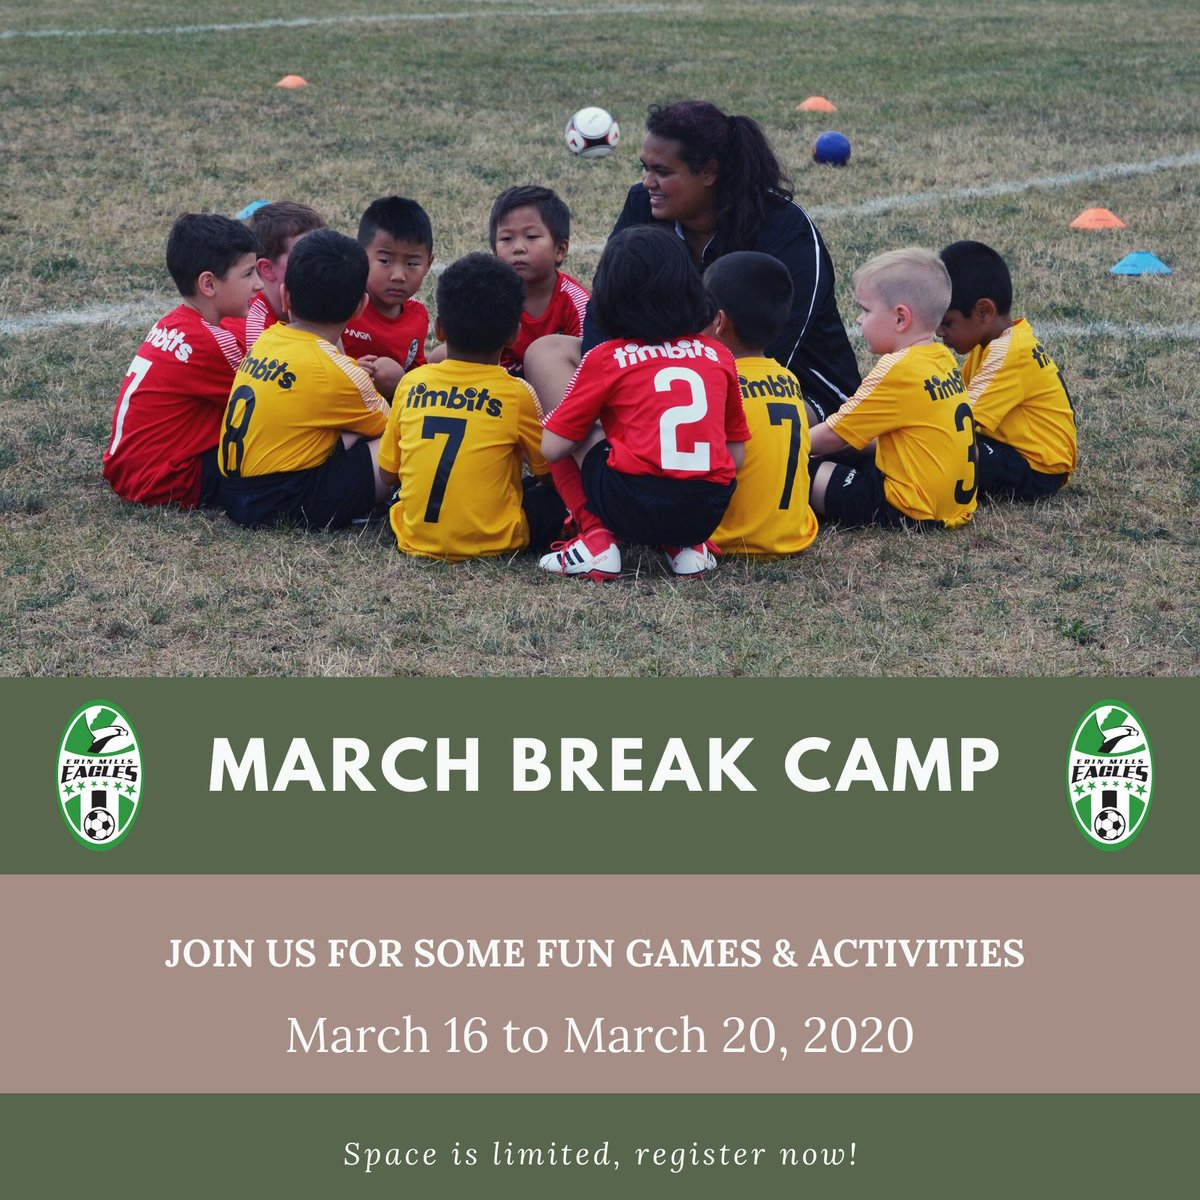 Hey there Eagles! There is only ONE WEEK left until our March Break Camp starts. Don't miss out on a week full of fun games and activities! Link in bio to register . . . #EMSC #Youthsoccer #MississaugaSoccer #Marchbreakcamp #Riseupeaglespic.twitter.com/SY9GRGJB4b